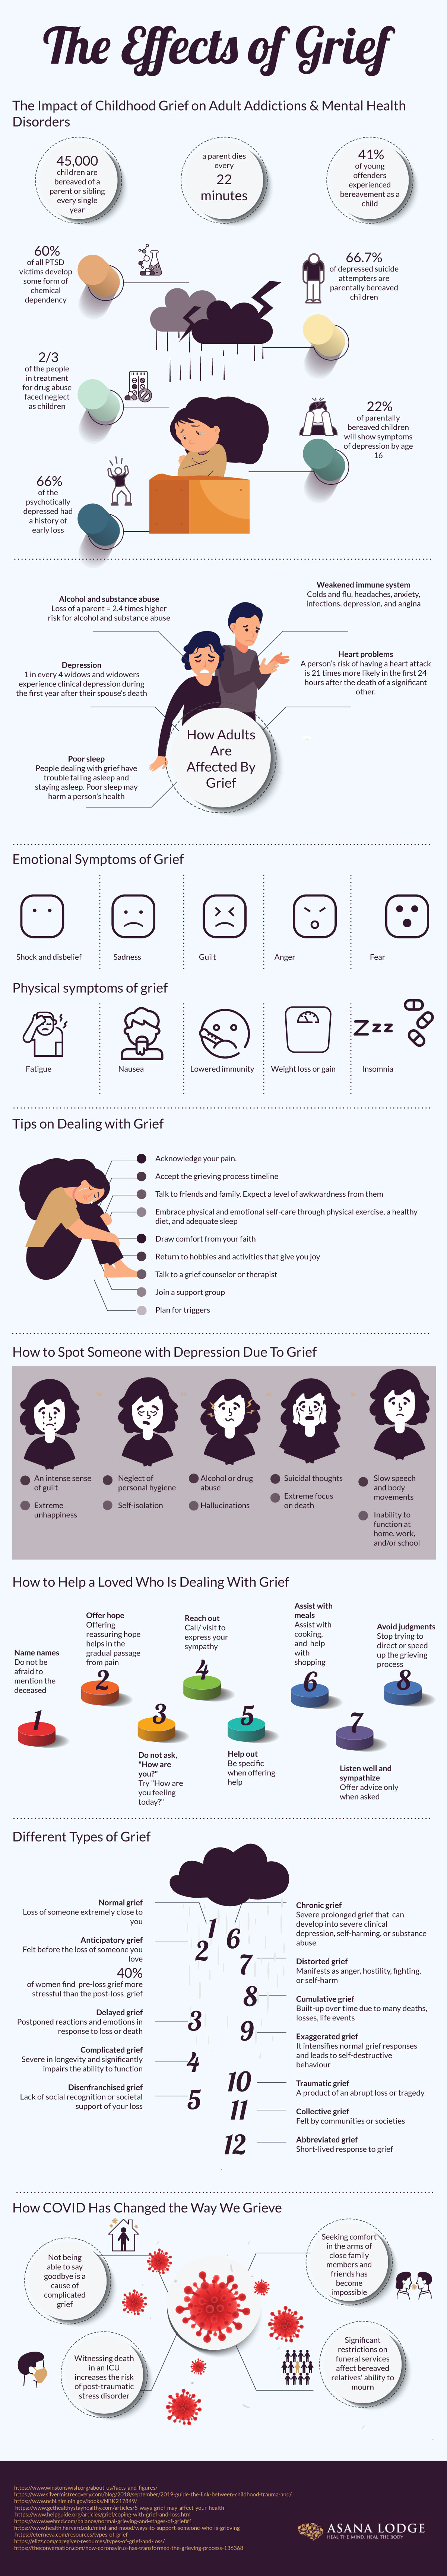 The Effects of Grief